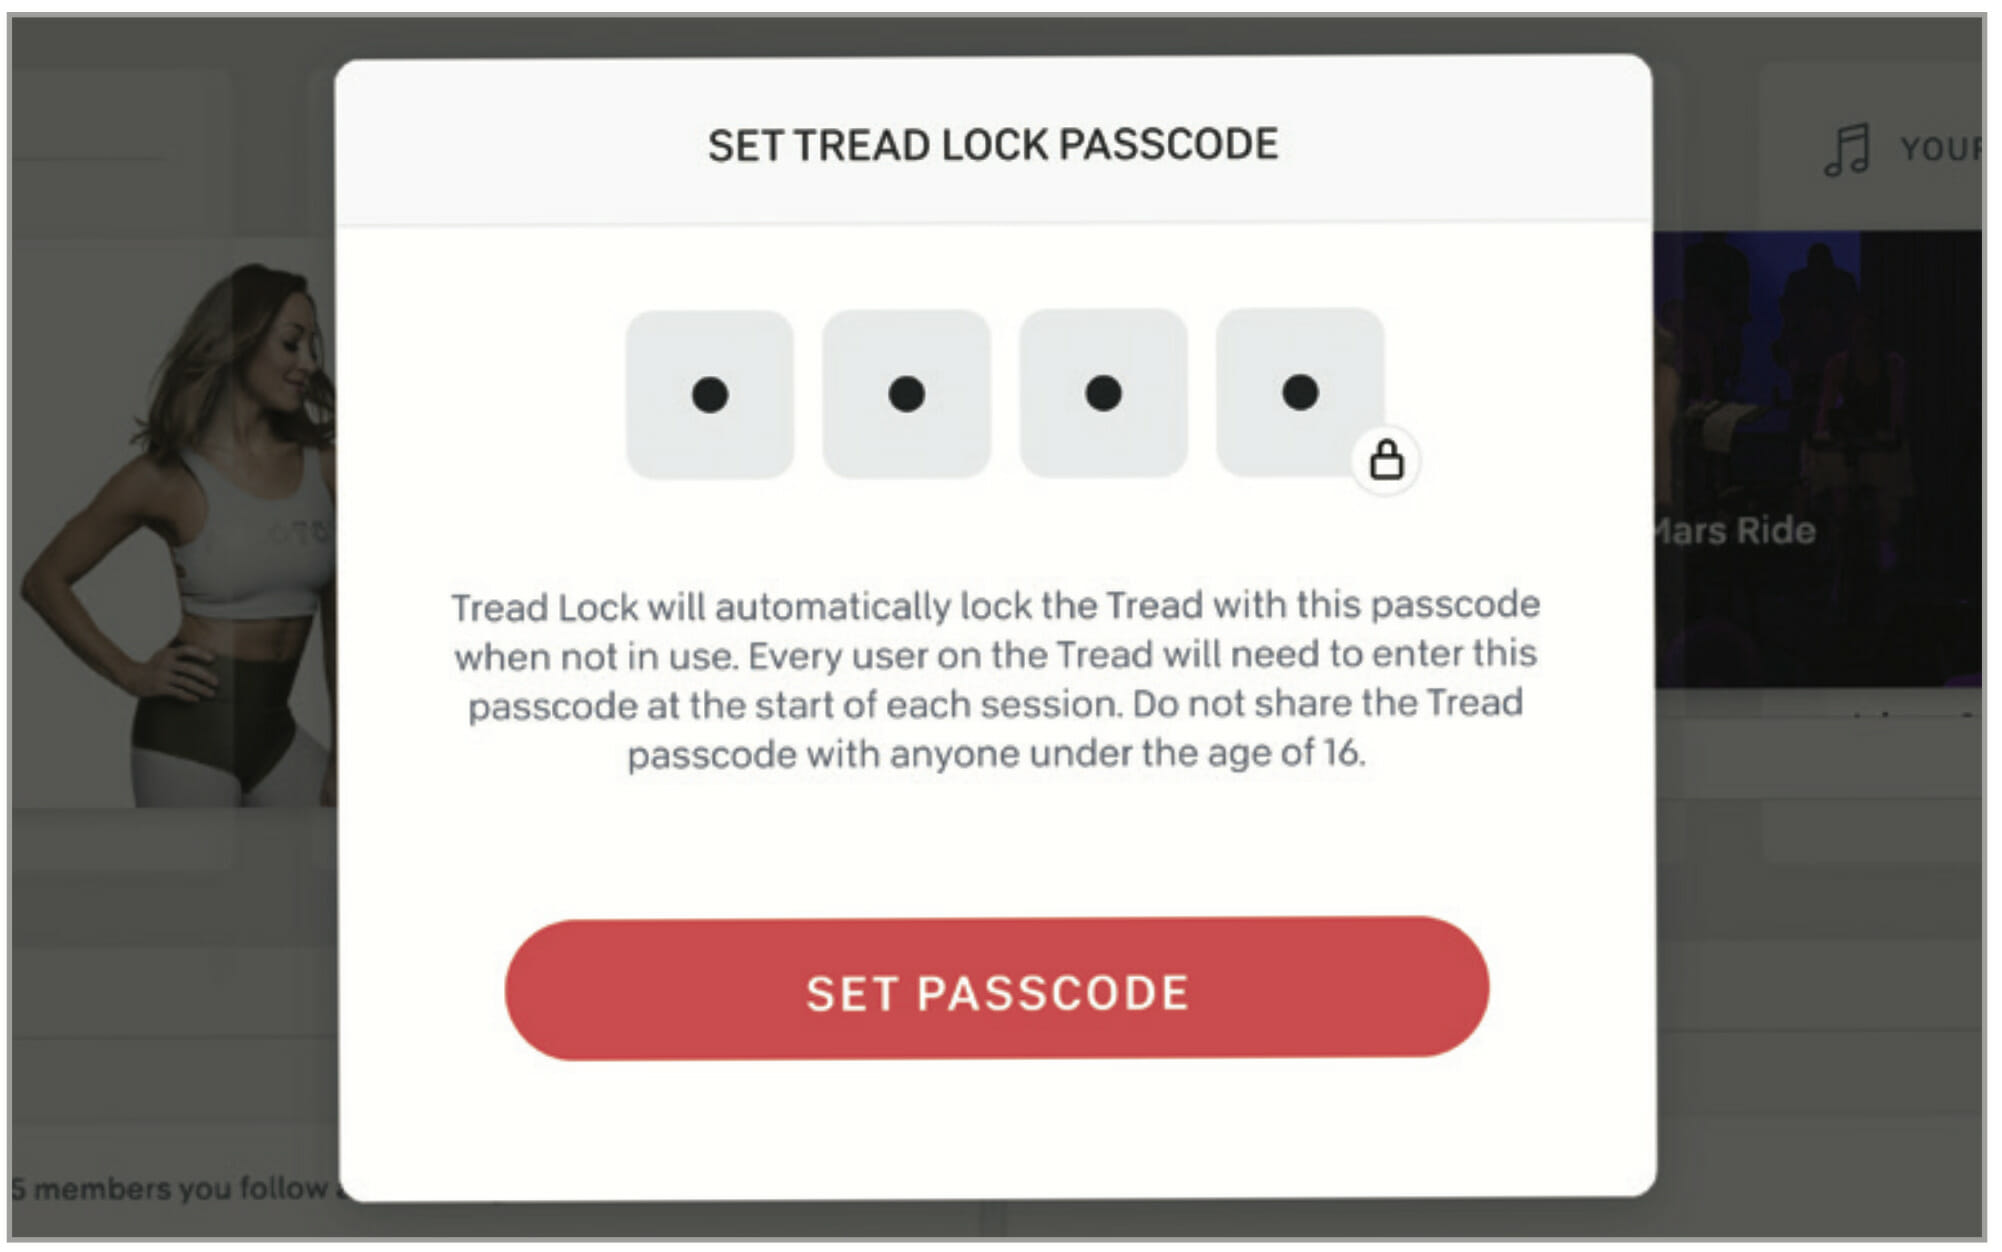 Image of the new Peloton Tread Lock safety passcode feature.